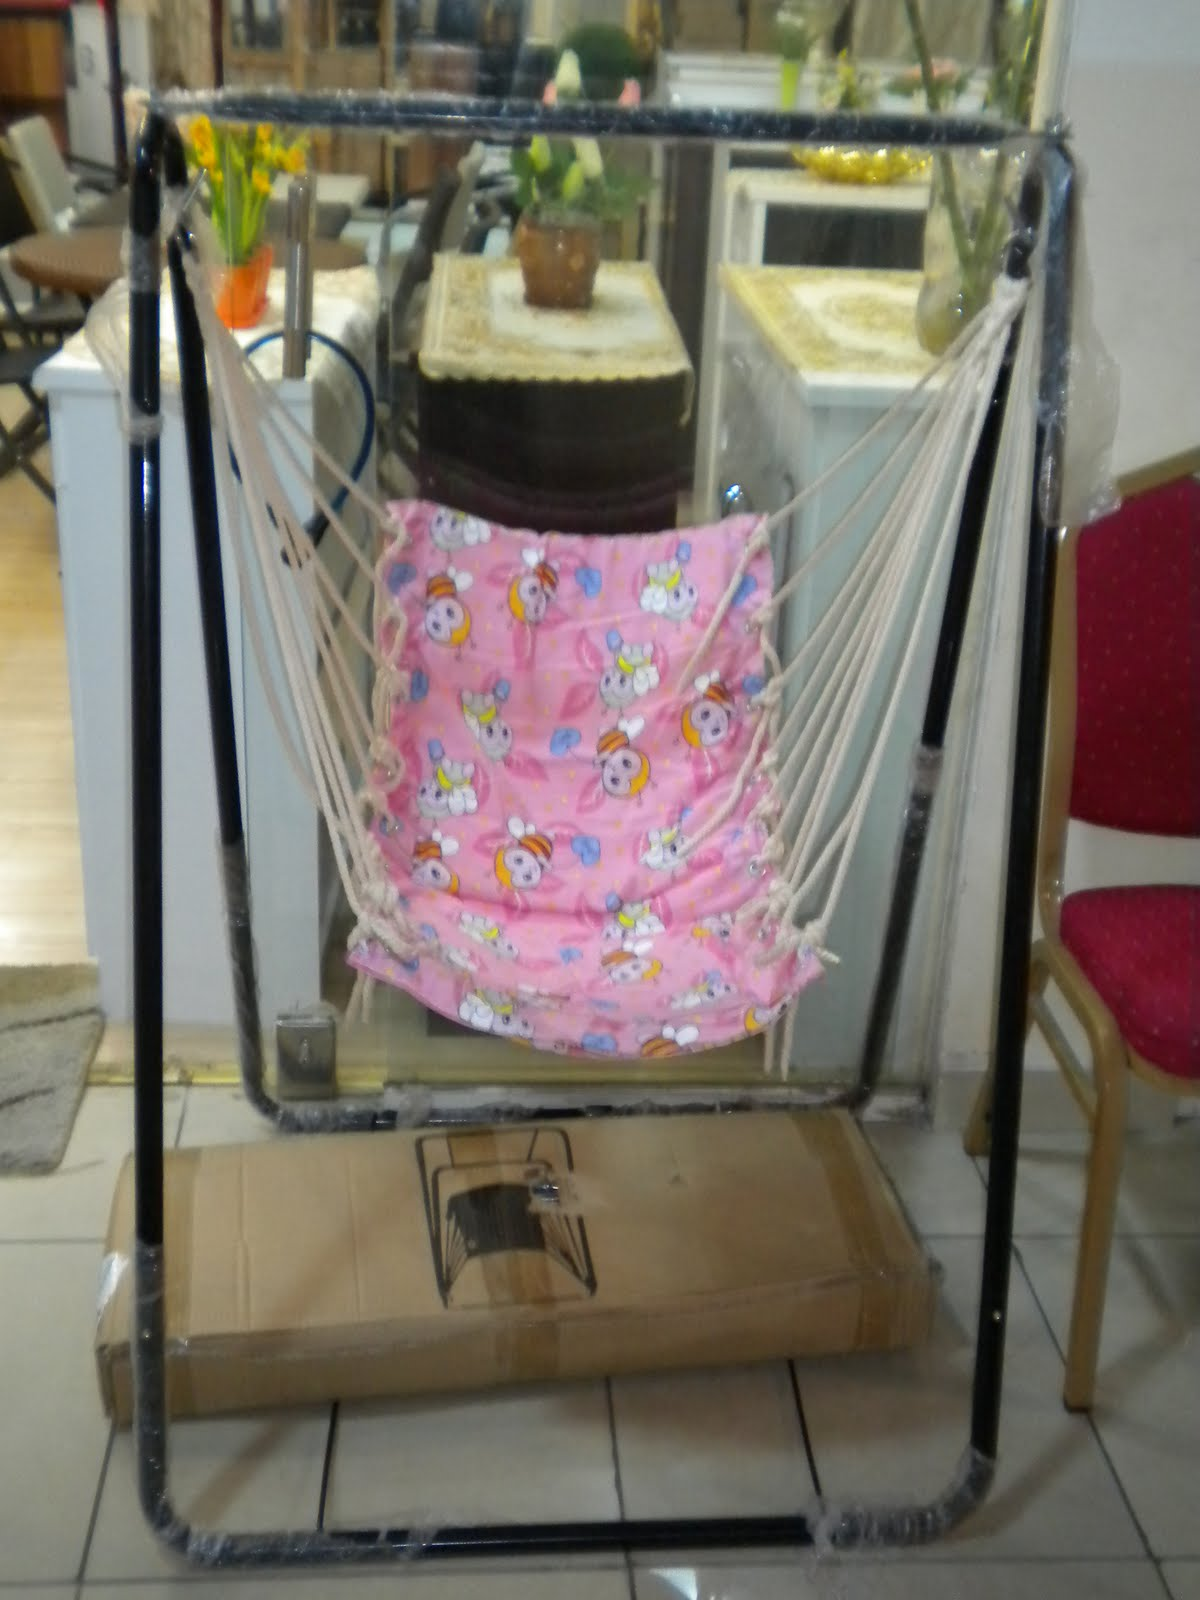 swing chair dragon mart cheap covers for party here today dubai tomorrow window washer a baby air i found this little jewel off the main strip how cute is that